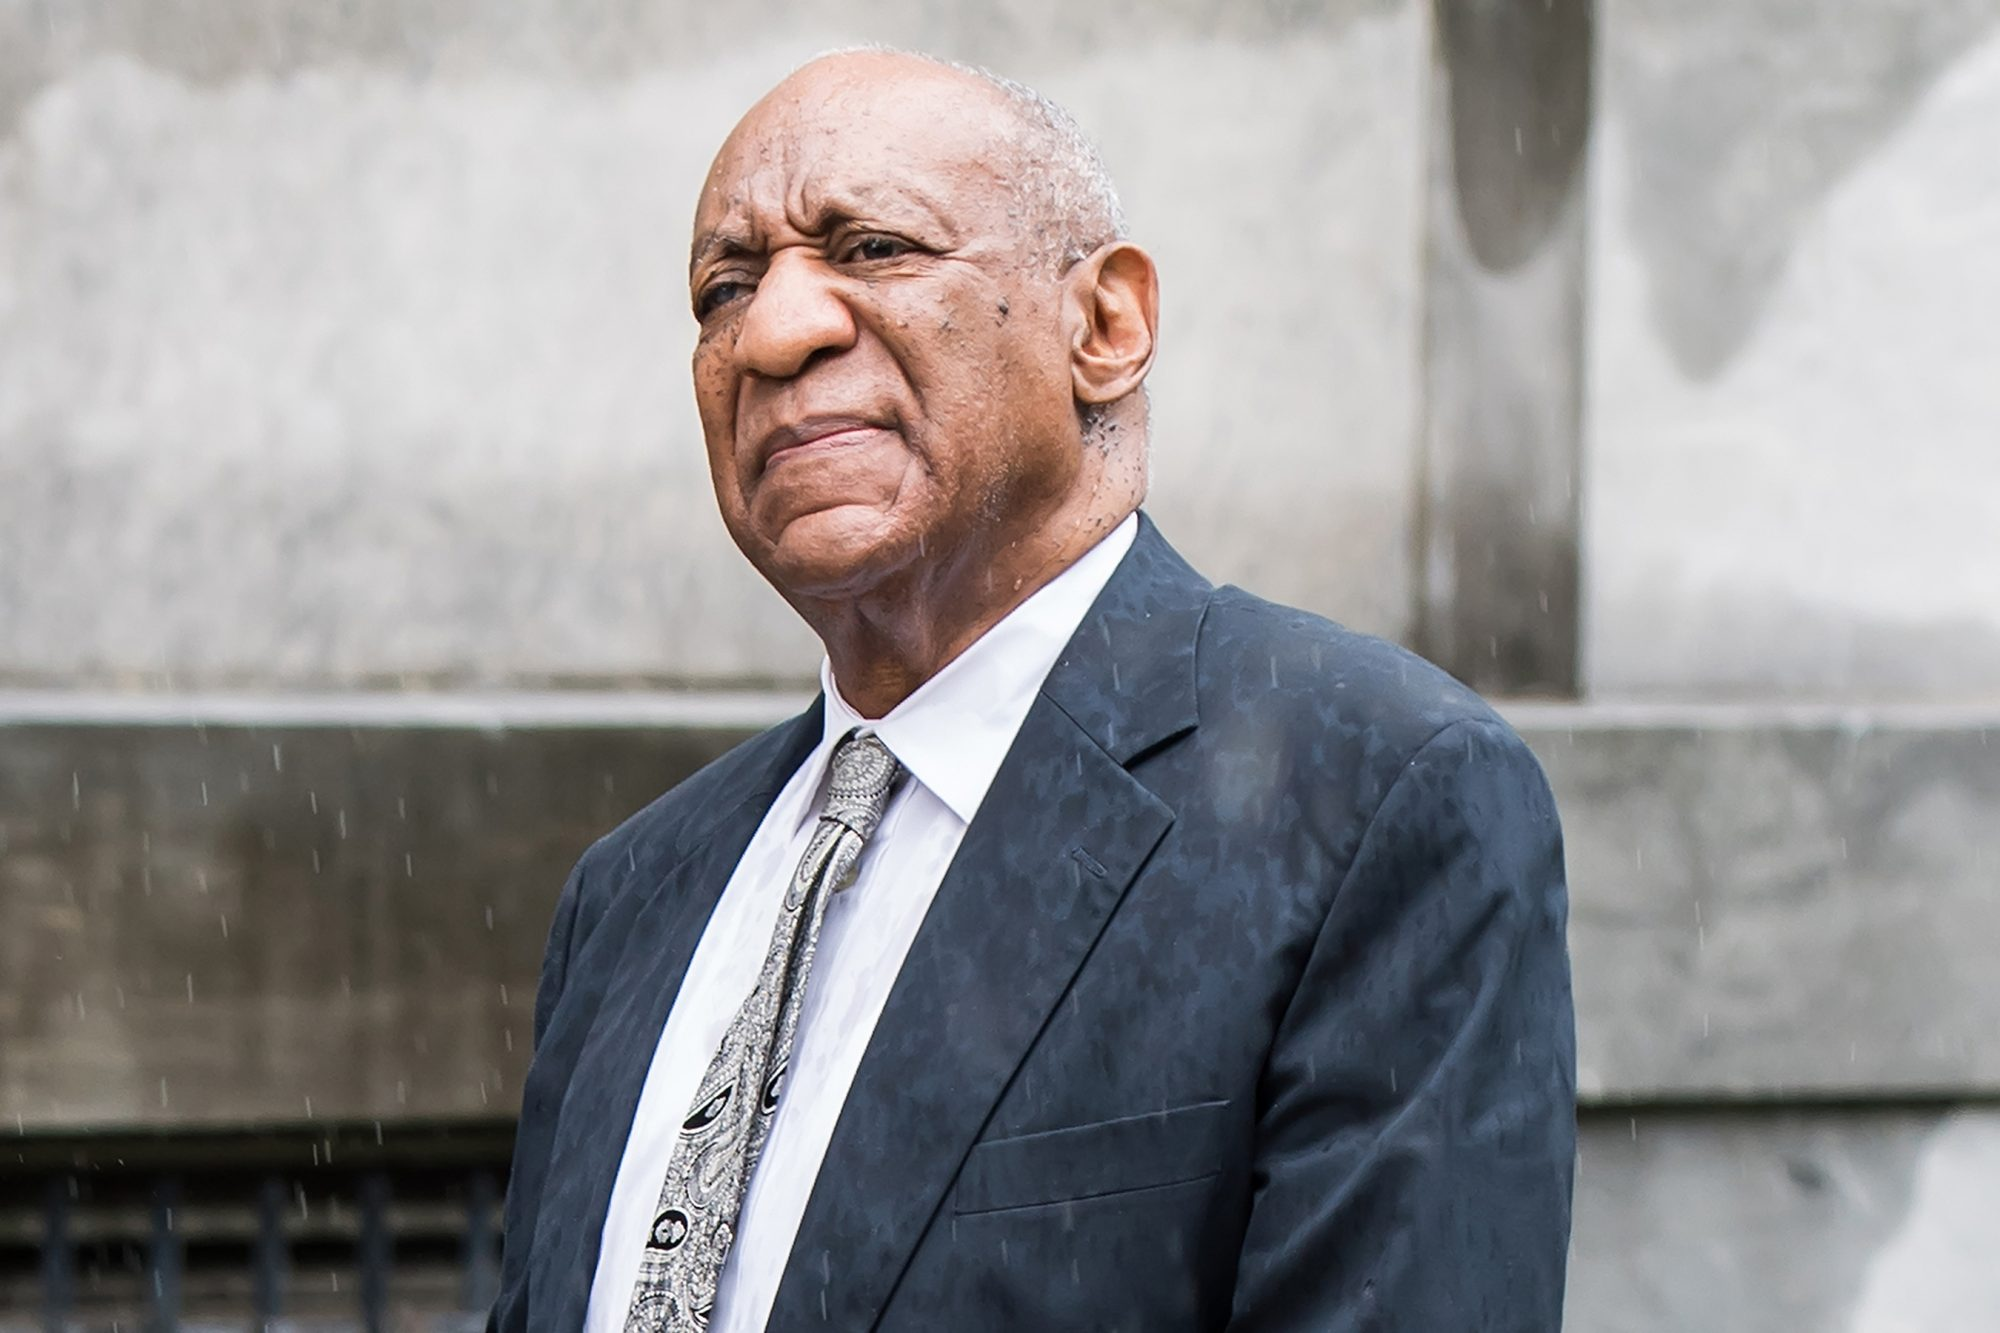 Bill Cosby Trial Continues After Defense Rests